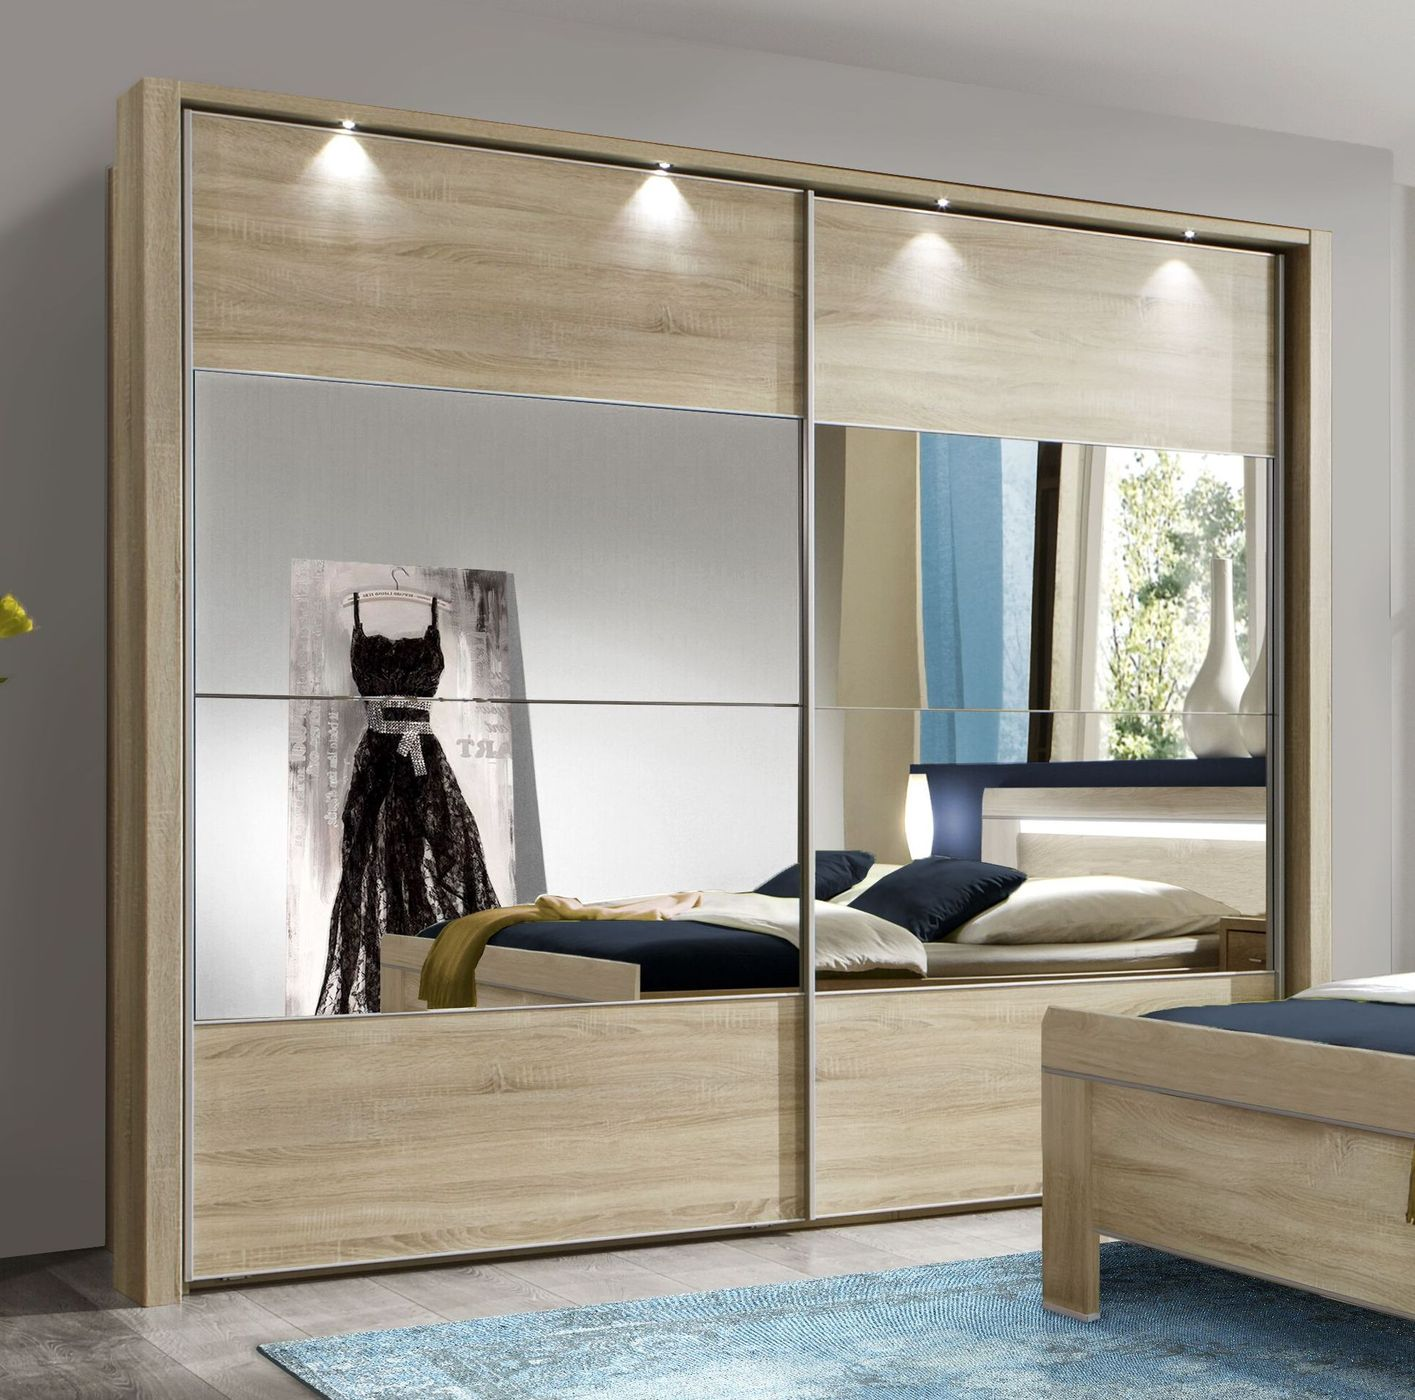 schiebet ren kleiderschrank in eiche dekor mit spiegel seymour. Black Bedroom Furniture Sets. Home Design Ideas